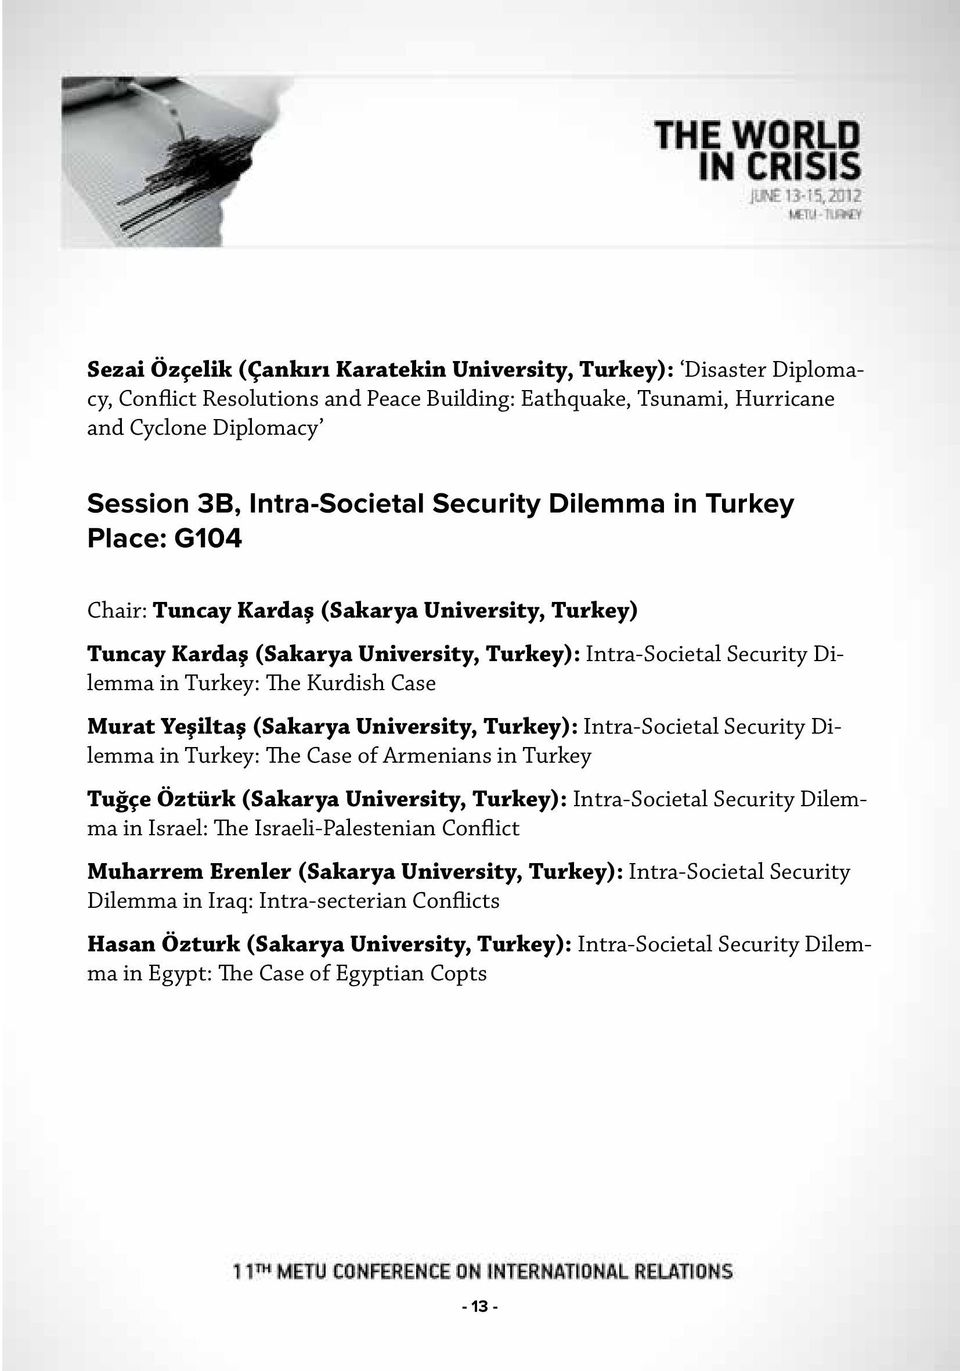 Yeşiltaş (Sakarya University, Turkey): Intra-Societal Security Dilemma in Turkey: The Case of Armenians in Turkey Tuğçe Öztürk (Sakarya University, Turkey): Intra-Societal Security Dilemma in Israel: